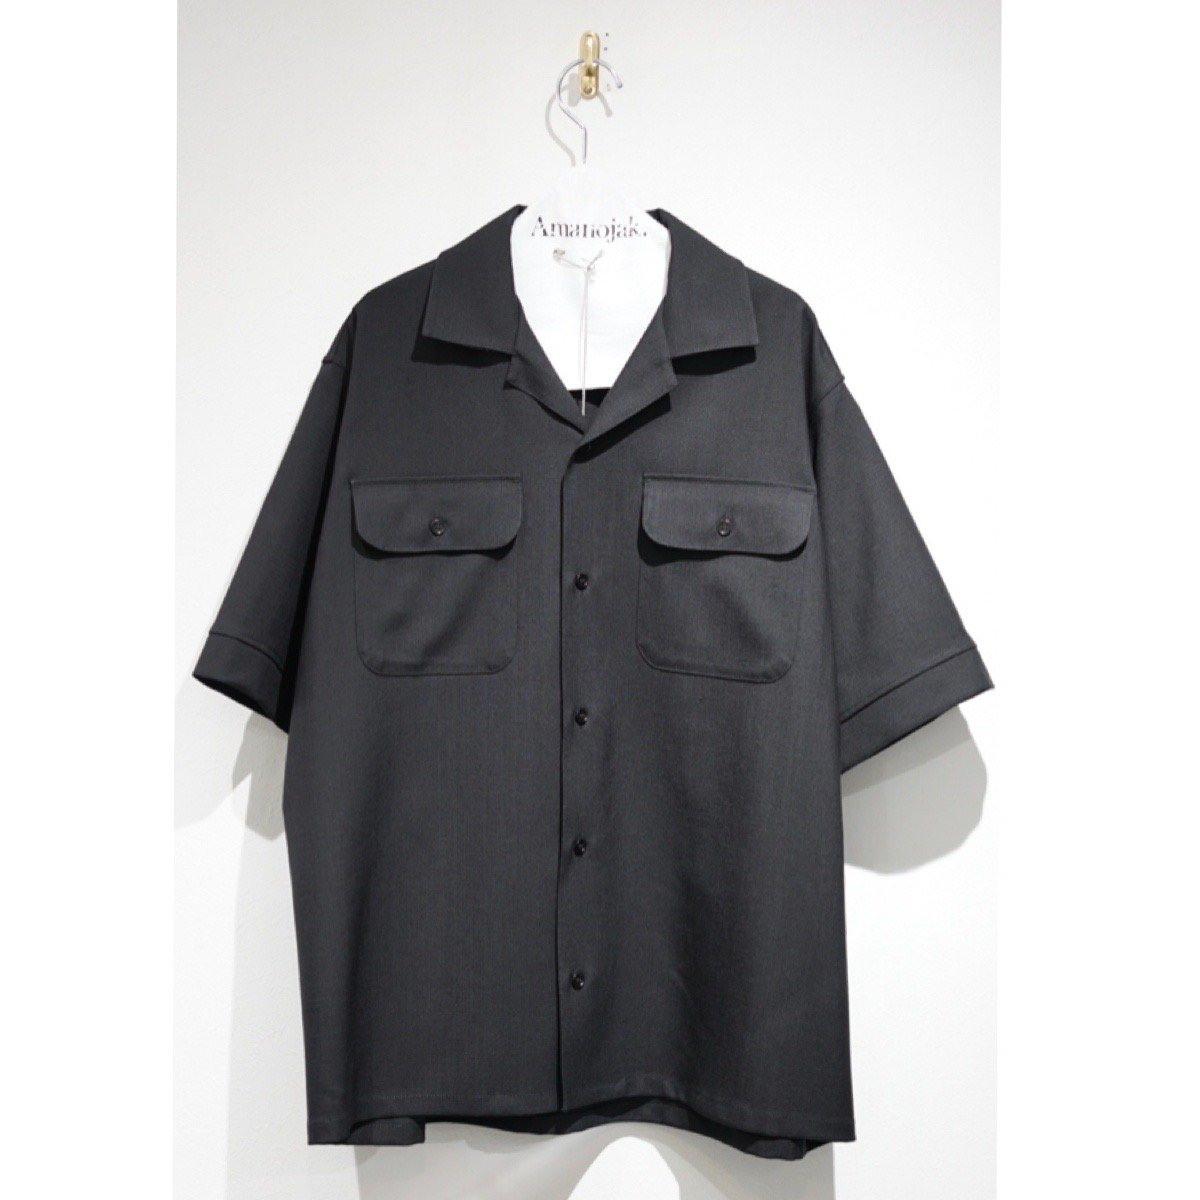 MARNI-RIP STOP WOOSTED WOOL O/C S/S SHIRTS BLACK<br>(在庫あり)